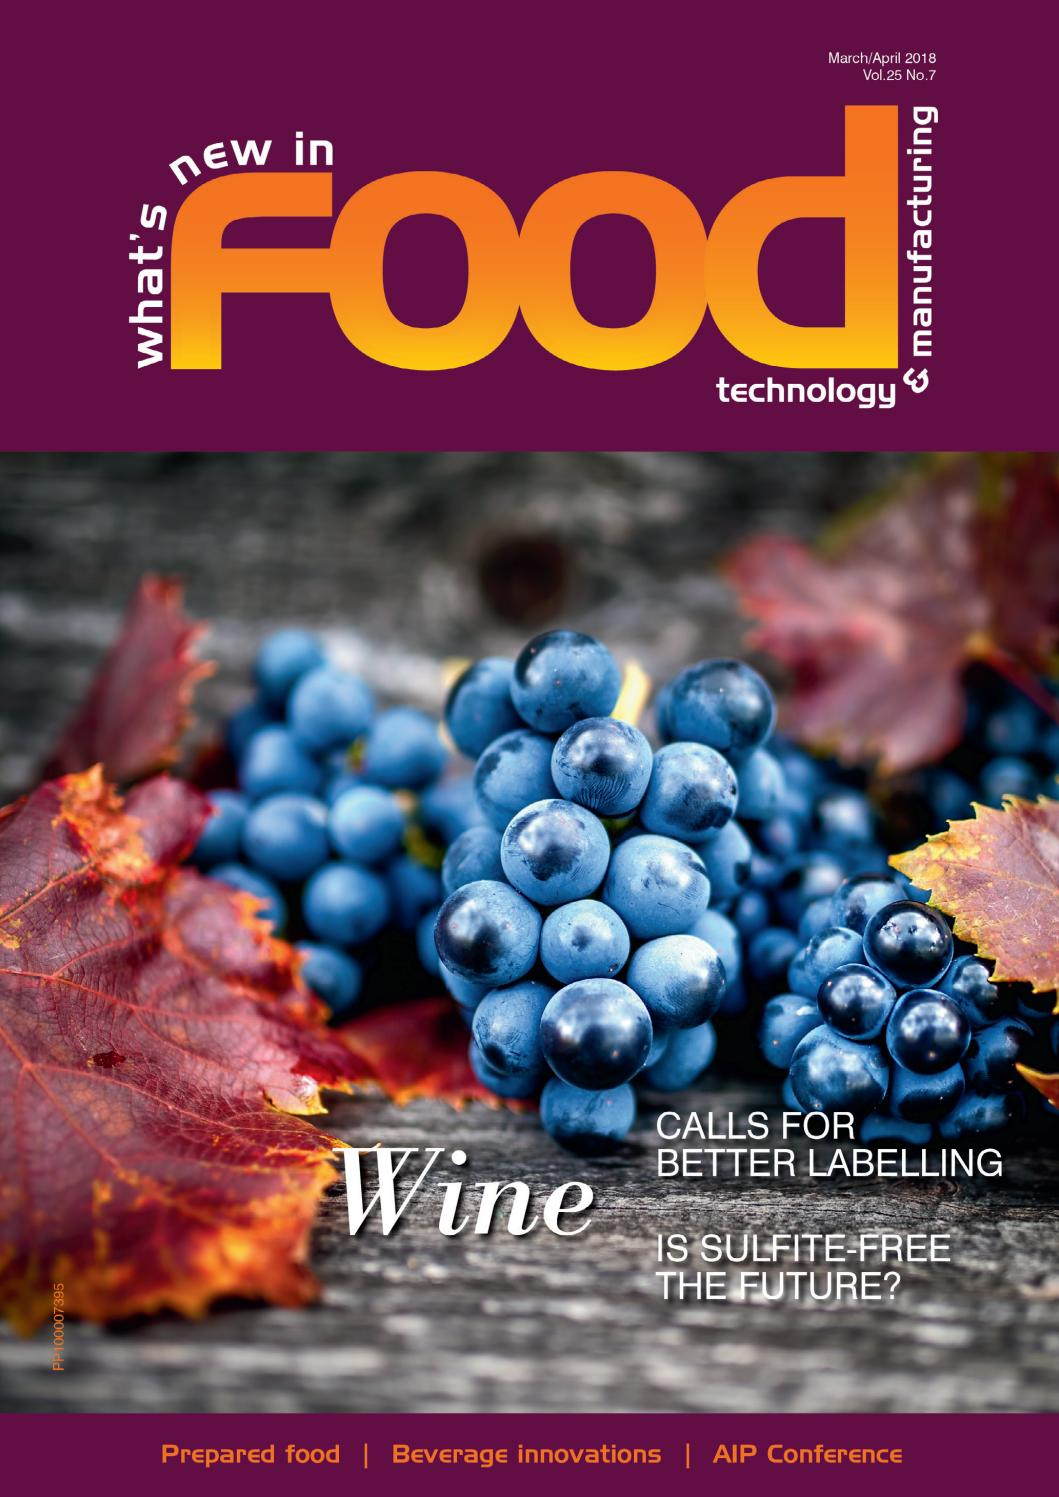 Whats New In Food Technology Manufacturing Mar Apr 2018 By Hoc Premium Double Breasted Black Suit Westwick Farrow Media Issuu